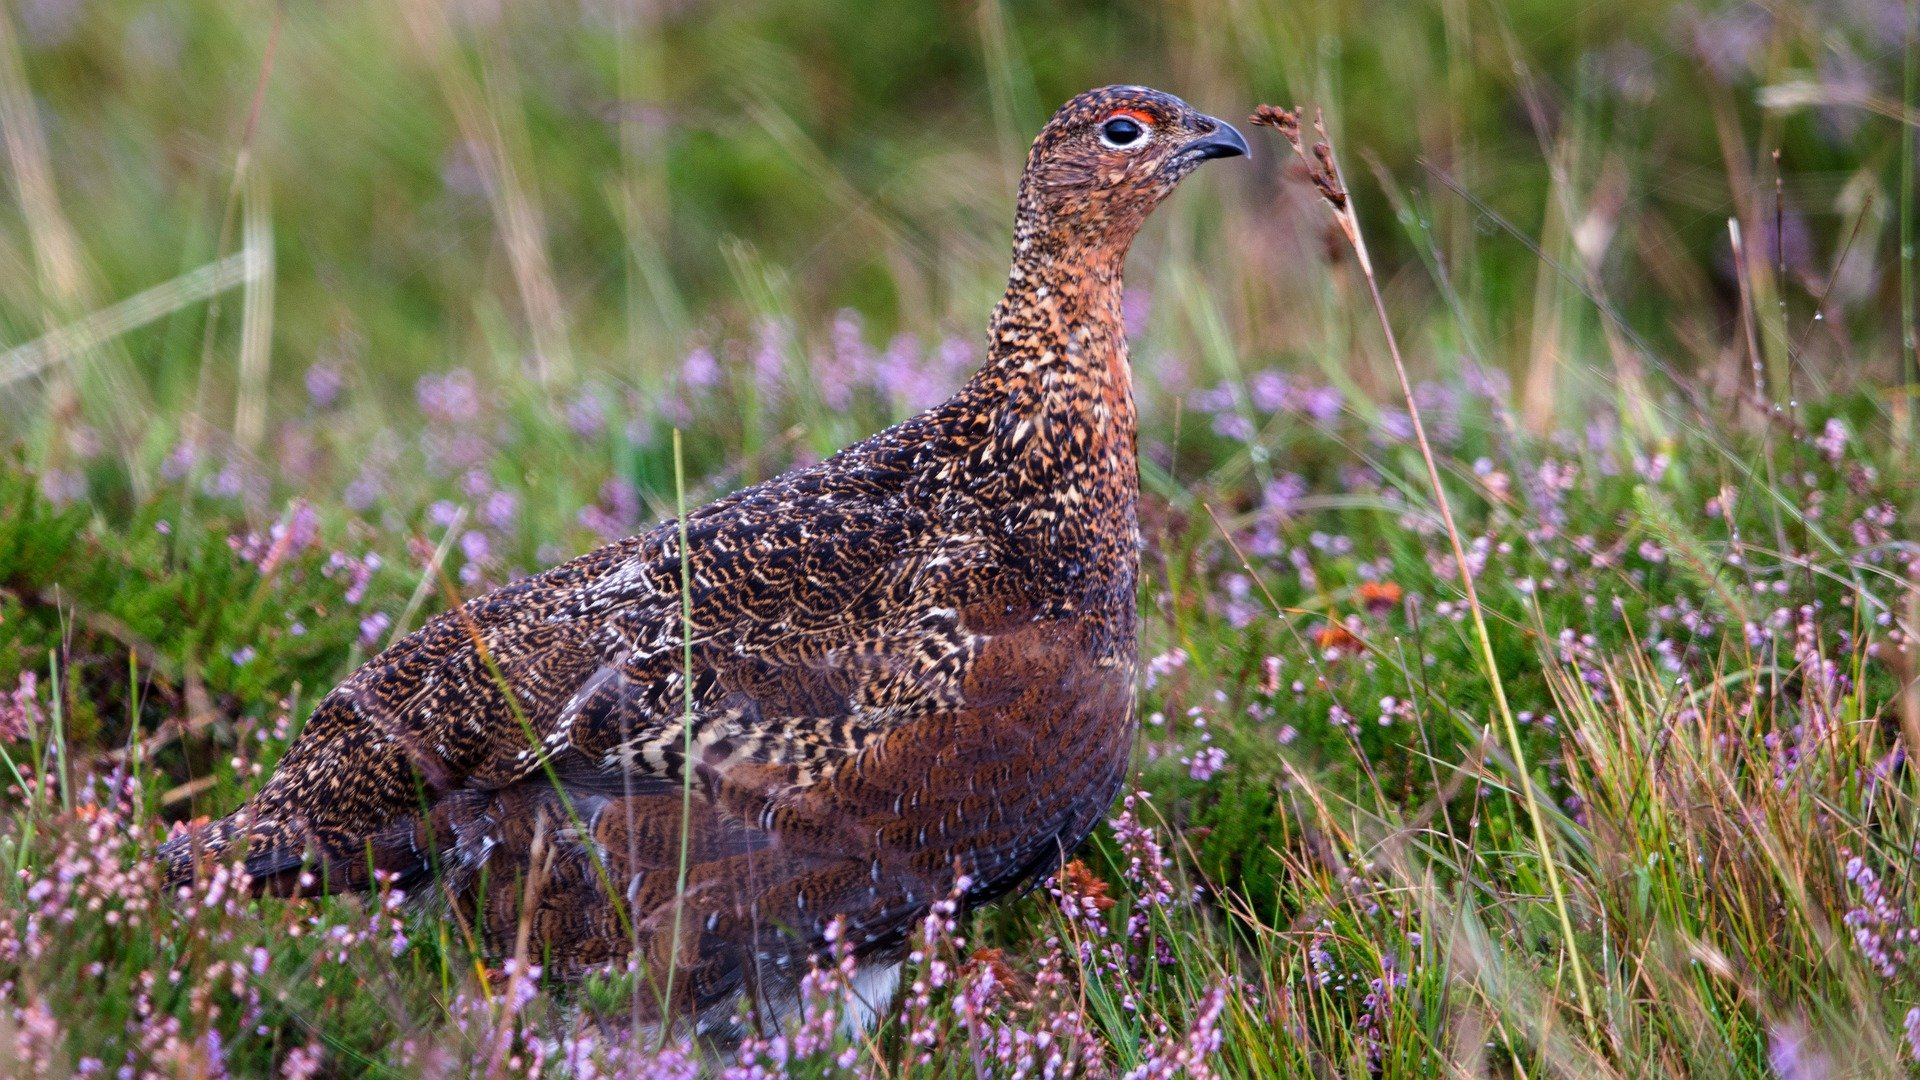 Image of a red grouse sitting in heather.